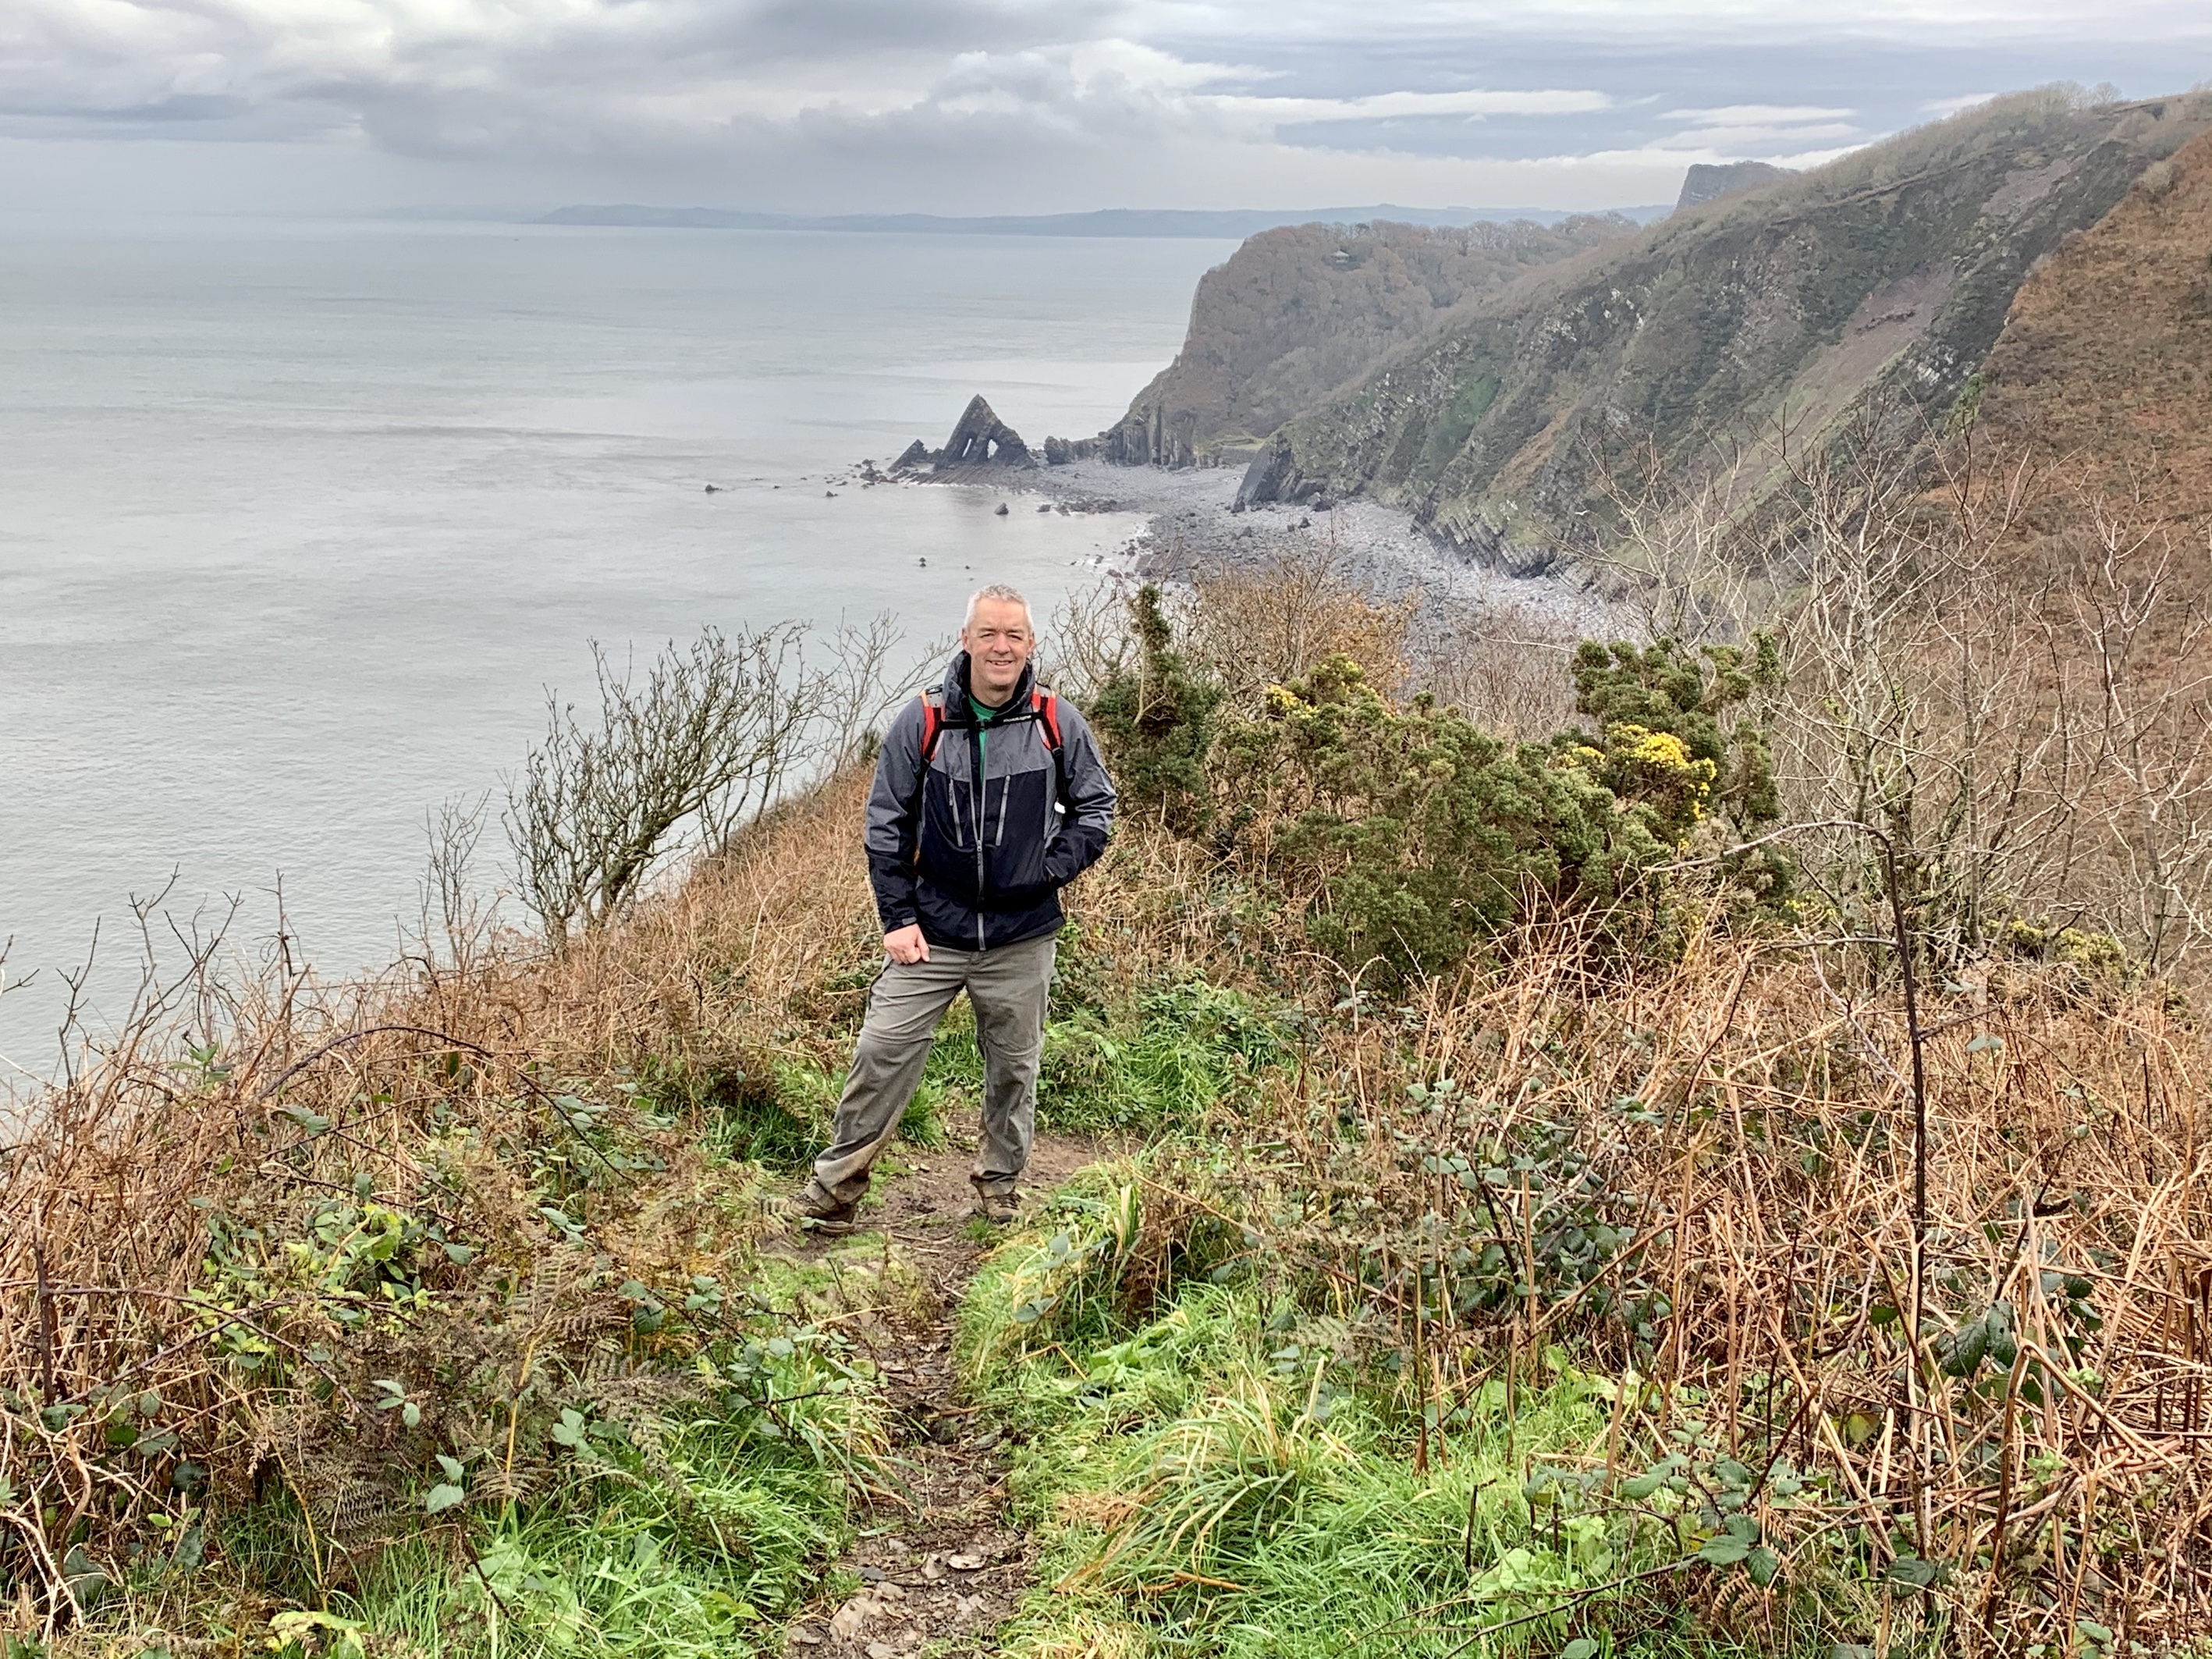 'Two eyed rock' on The South West Coast Path from Clovelly to Hartland Quay